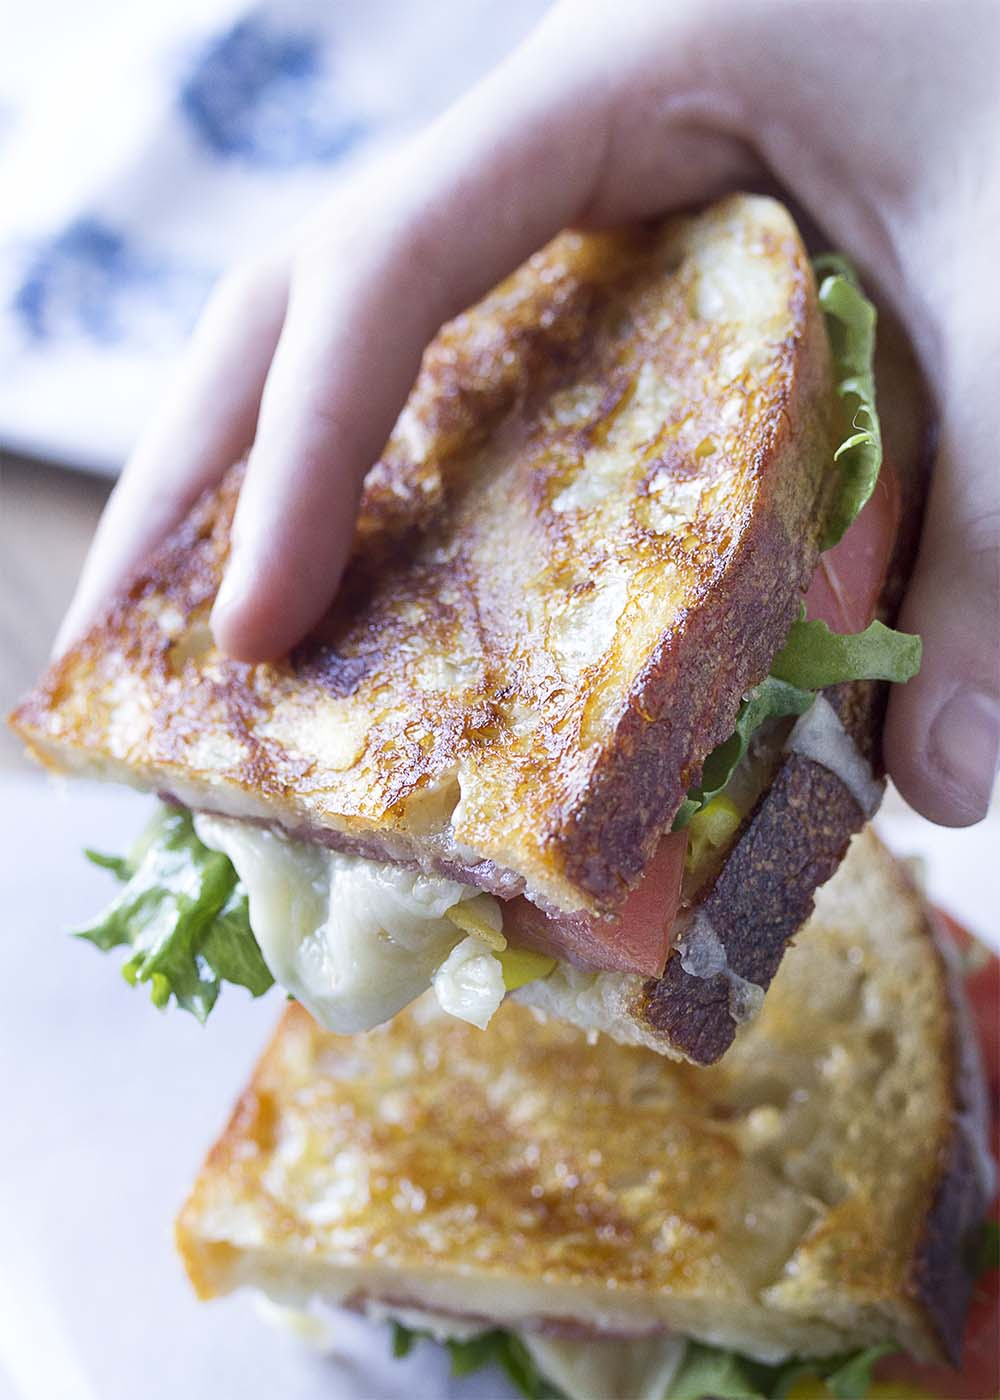 Hand lifting grilled sandwich with melted cheese and lettuce hanging over the edge.